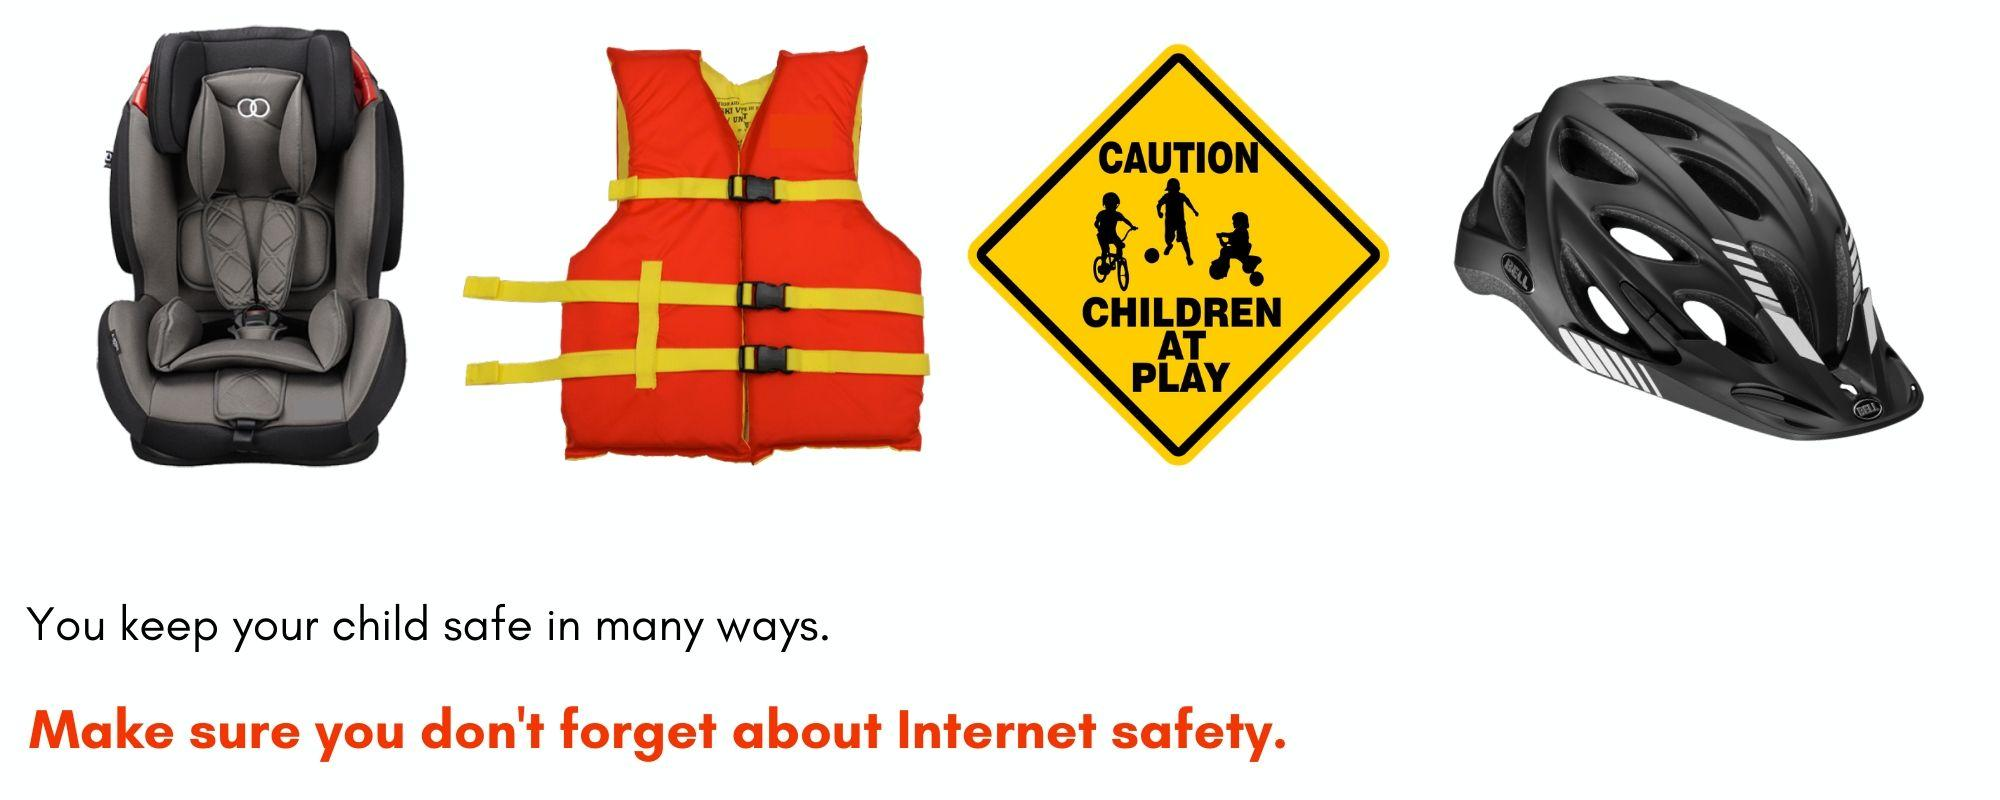 """Images of a child carseat, a life jacket, a """"slow, children at play"""" sign and a bike helmet with the text """"You keep your child safe in many ways. Make sure you don't forget about internet safety."""